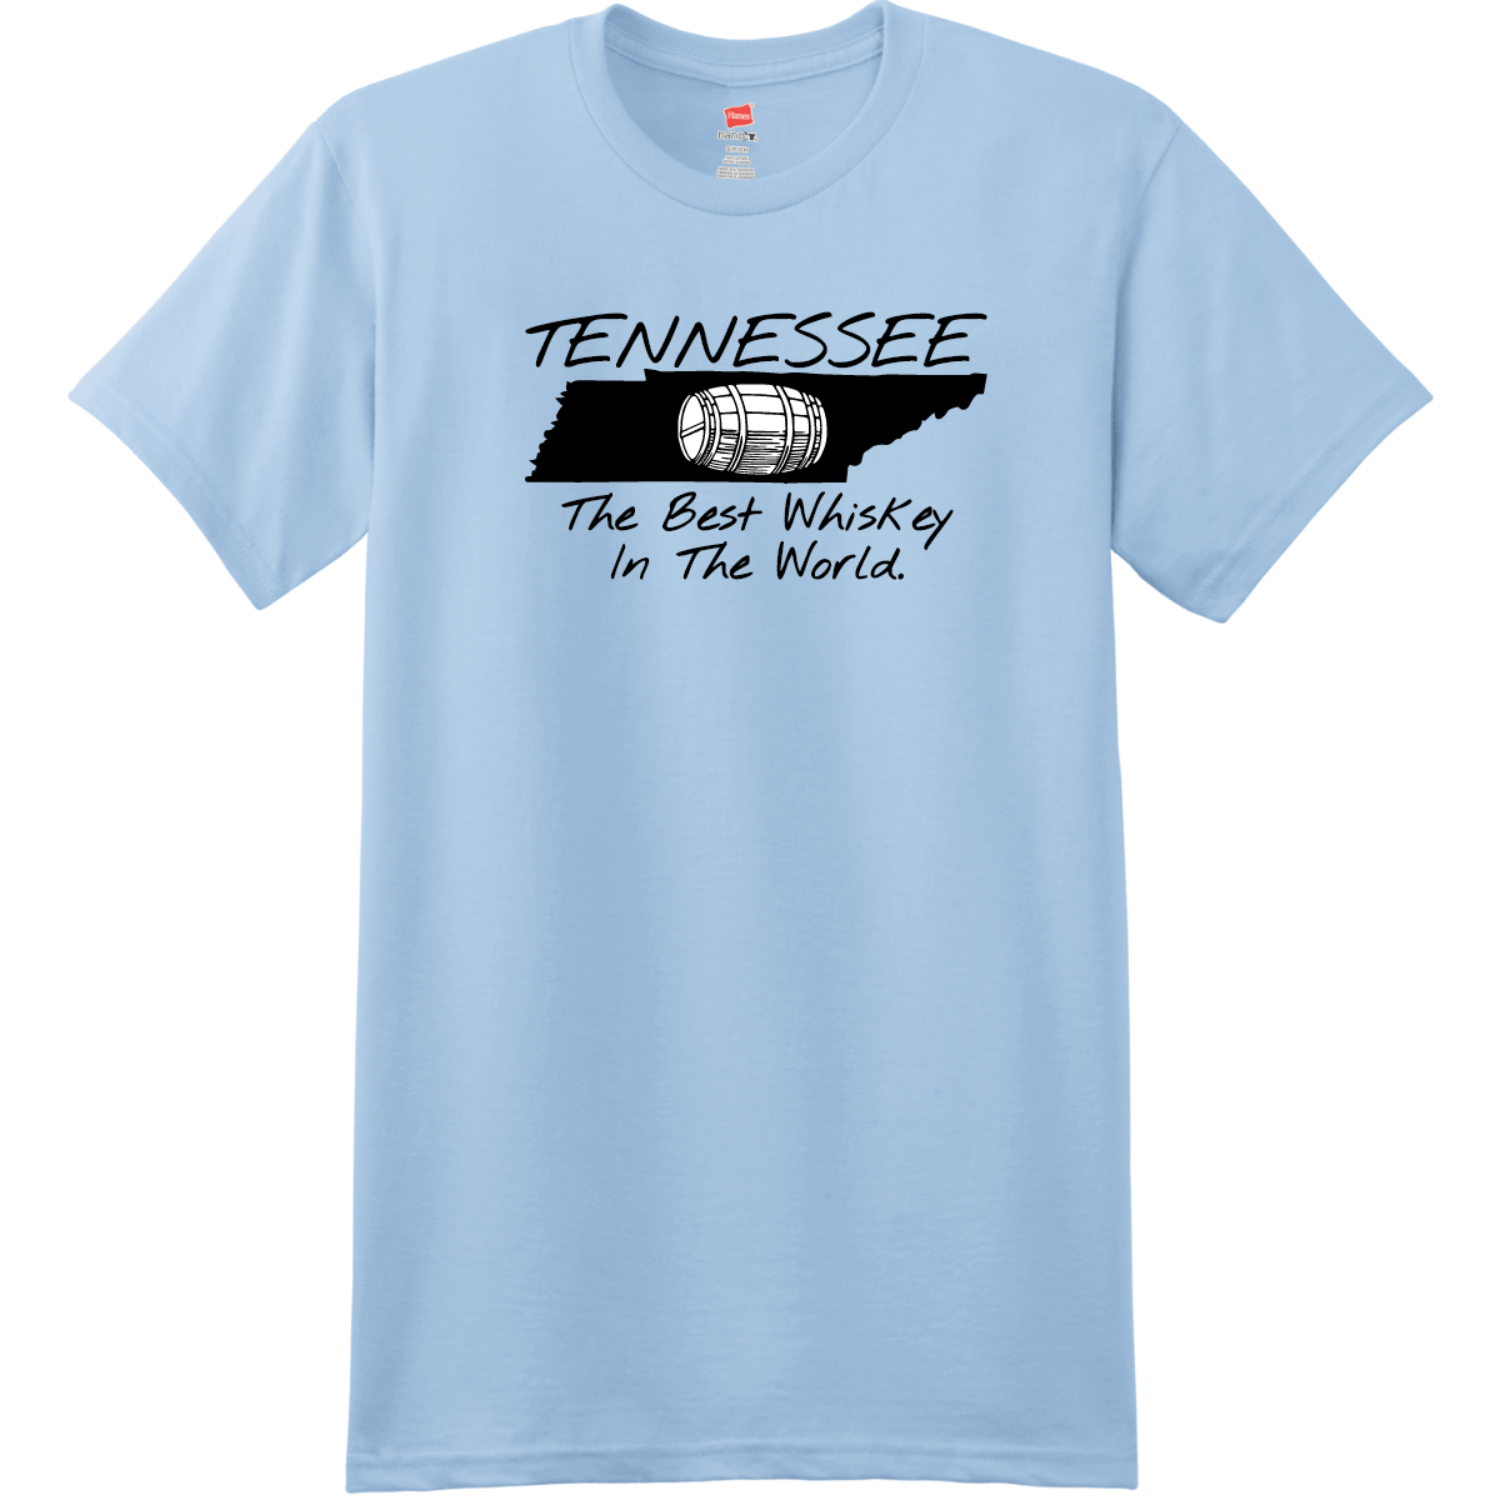 Tennessee Best Whiskey In The World T-Shirt Light Blue Hanes Nano 4980 Ringspun Cotton T Shirt